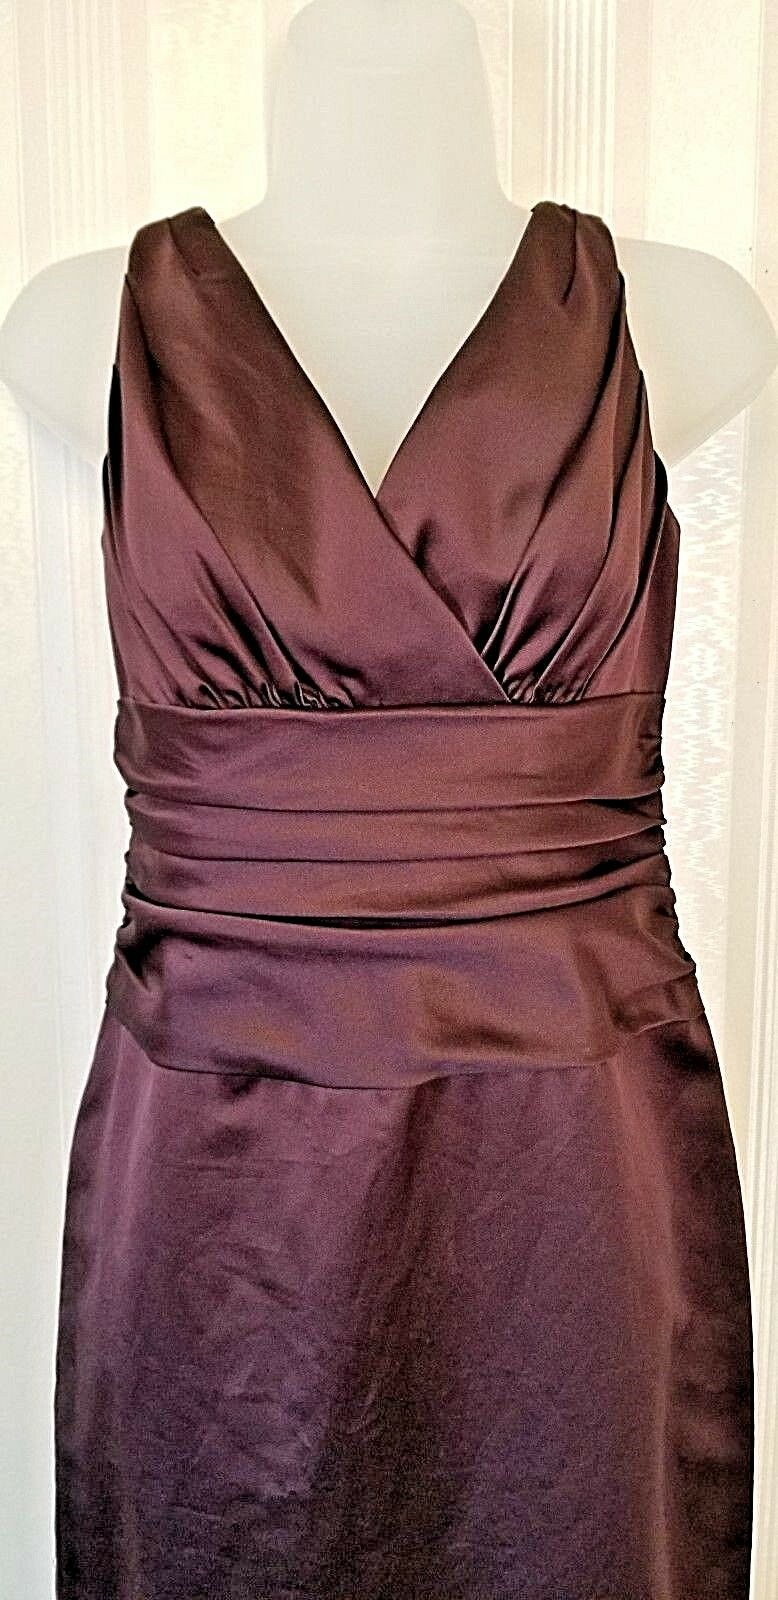 David's Bridal chocolate brown Formal prom bridesmaid long pleated bodice Size 8